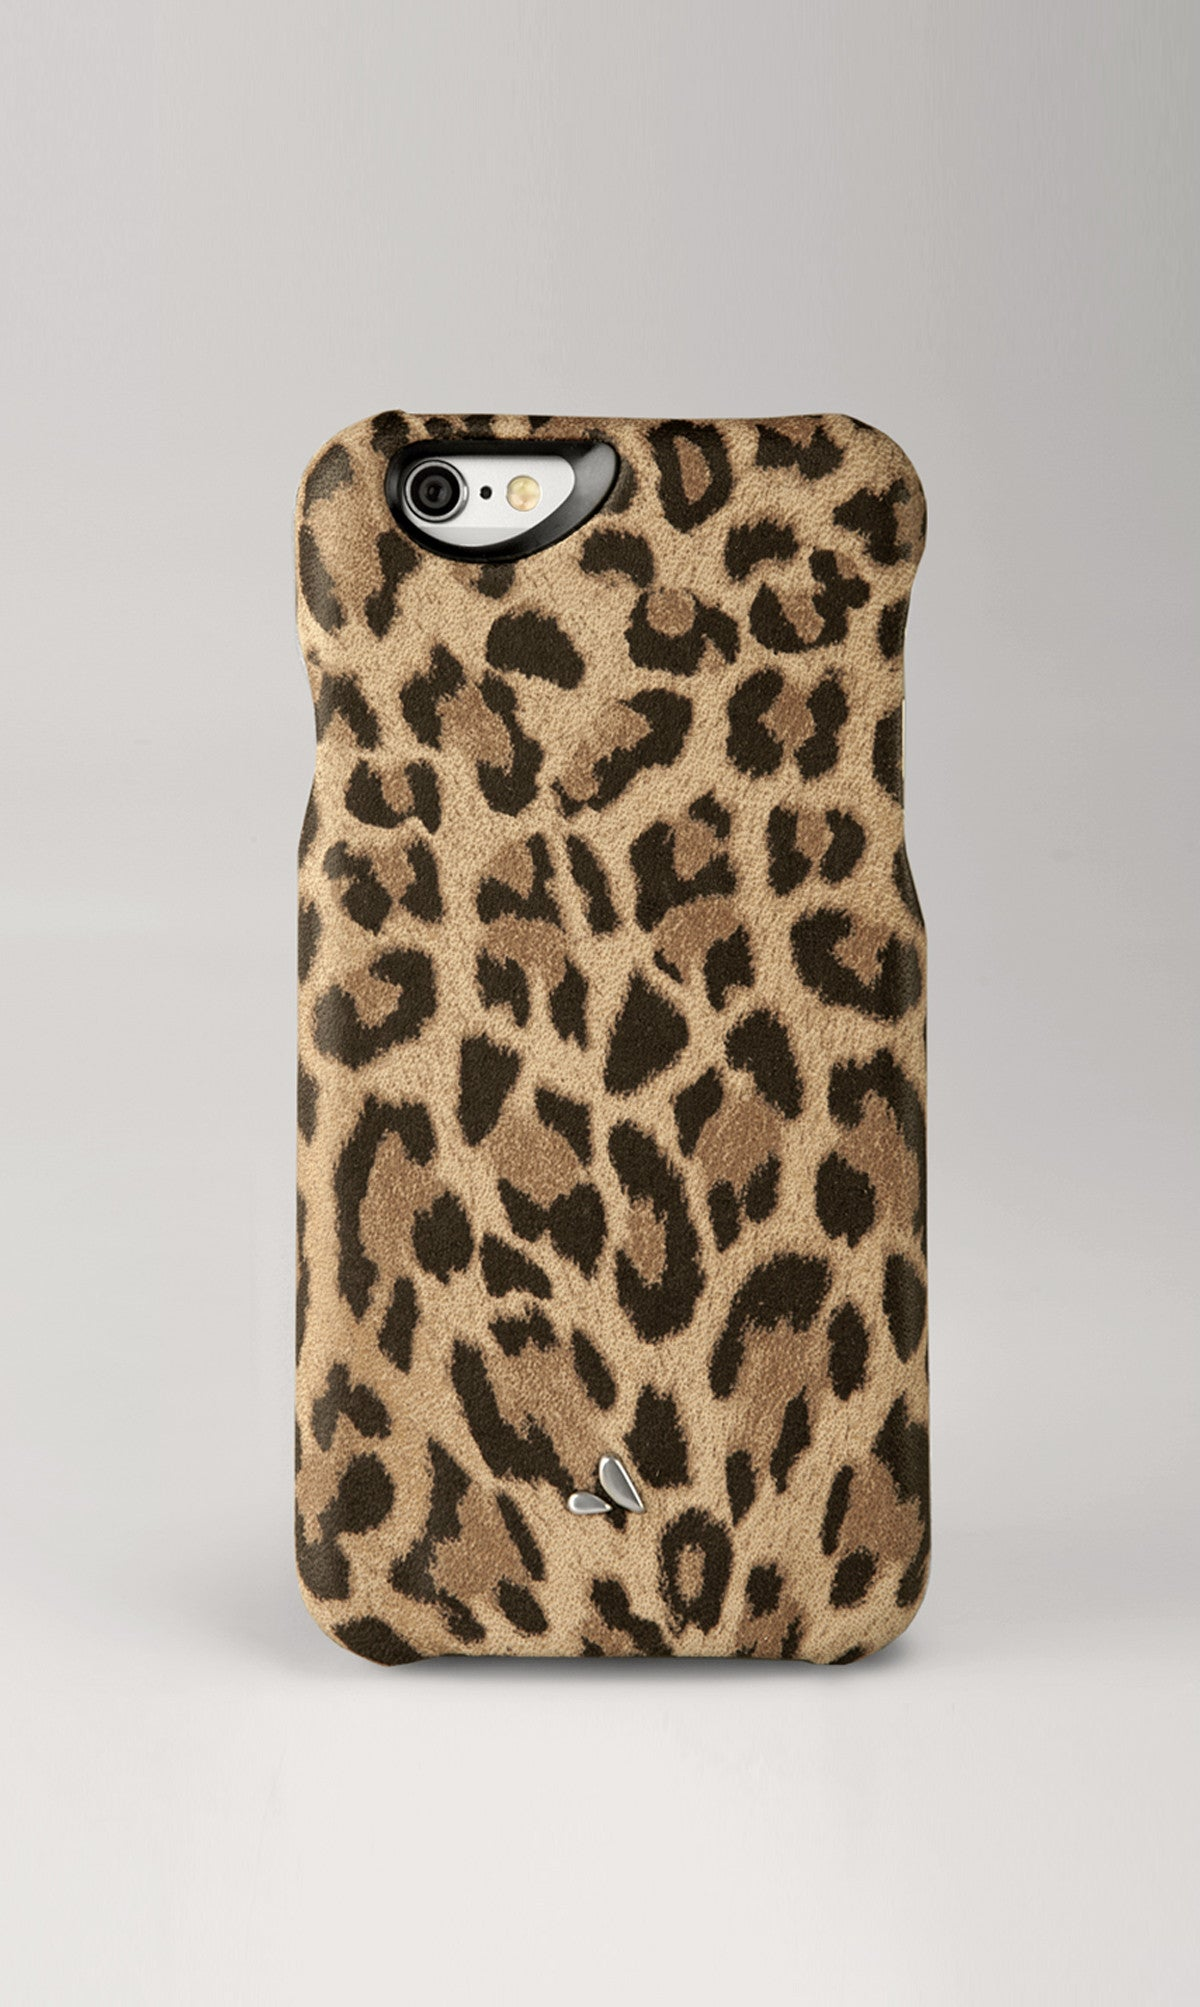 Cheeta Leather Case for iPhone 6/6s and iPhone 6/6s Plus